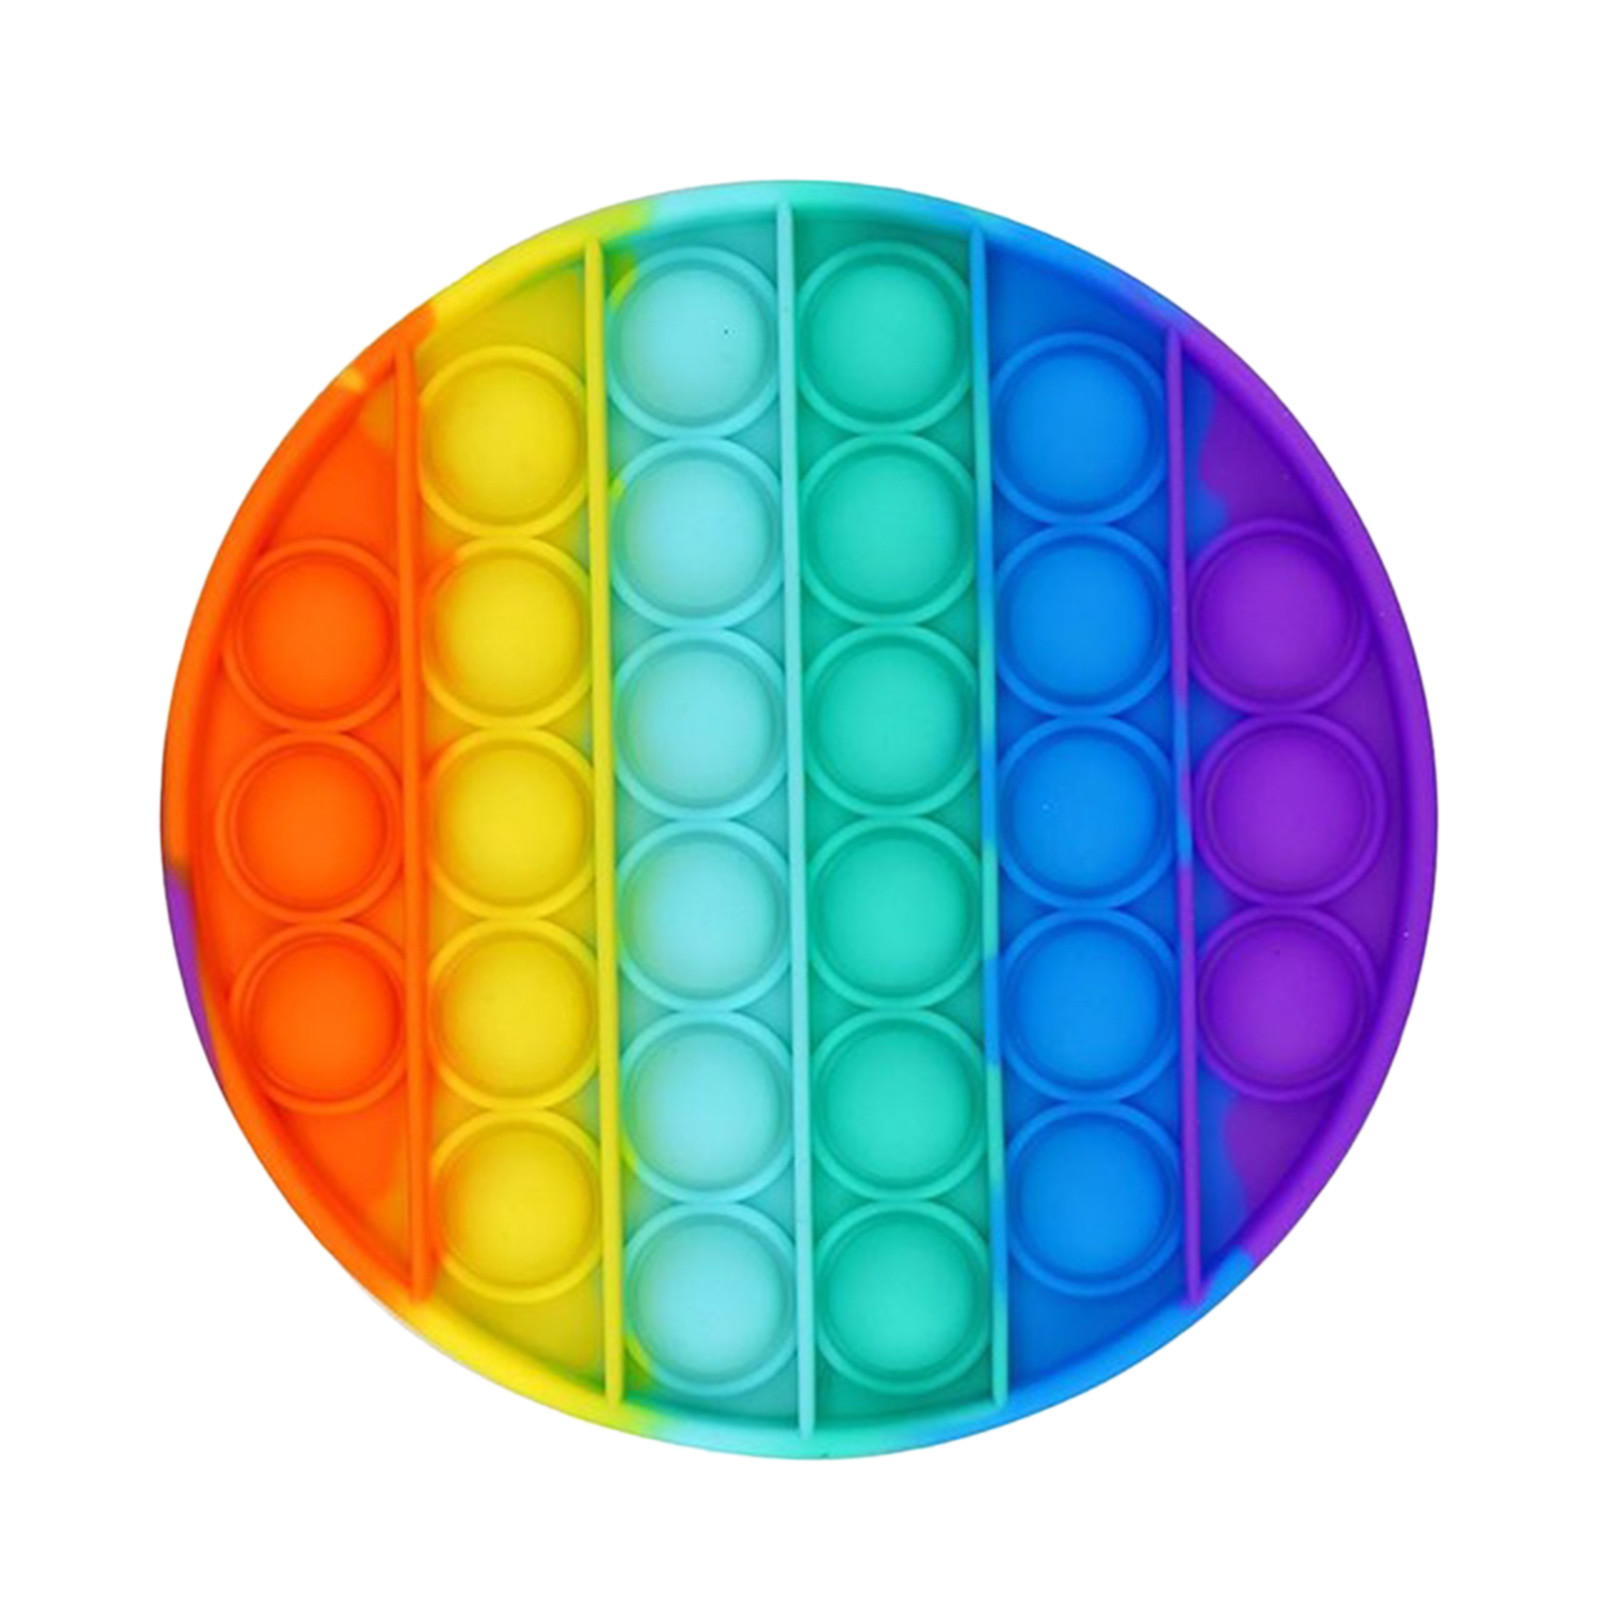 Reliever-Toy Rainbow Fidget Bubble-Sensory Emotions-Stress Anxiety Push Popit for OCD img4